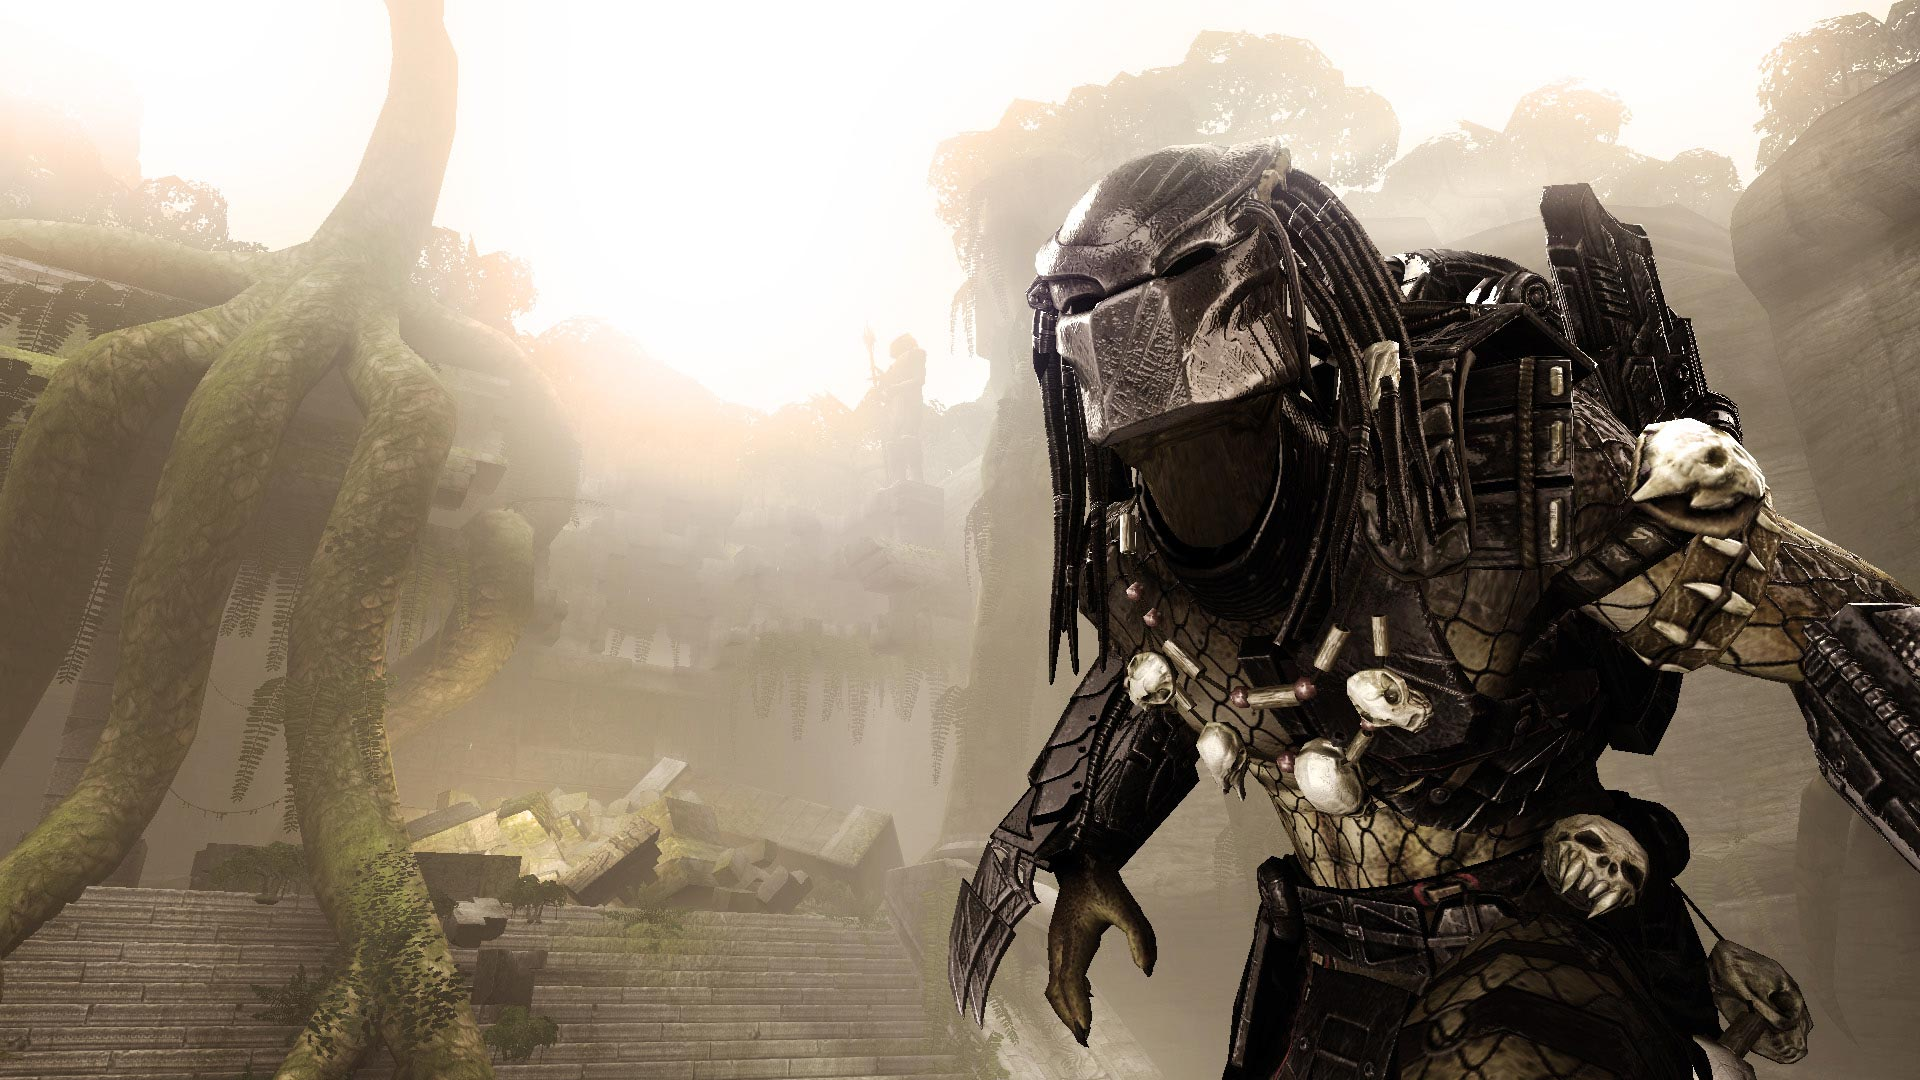 aliens vs predator 3 - photo #19